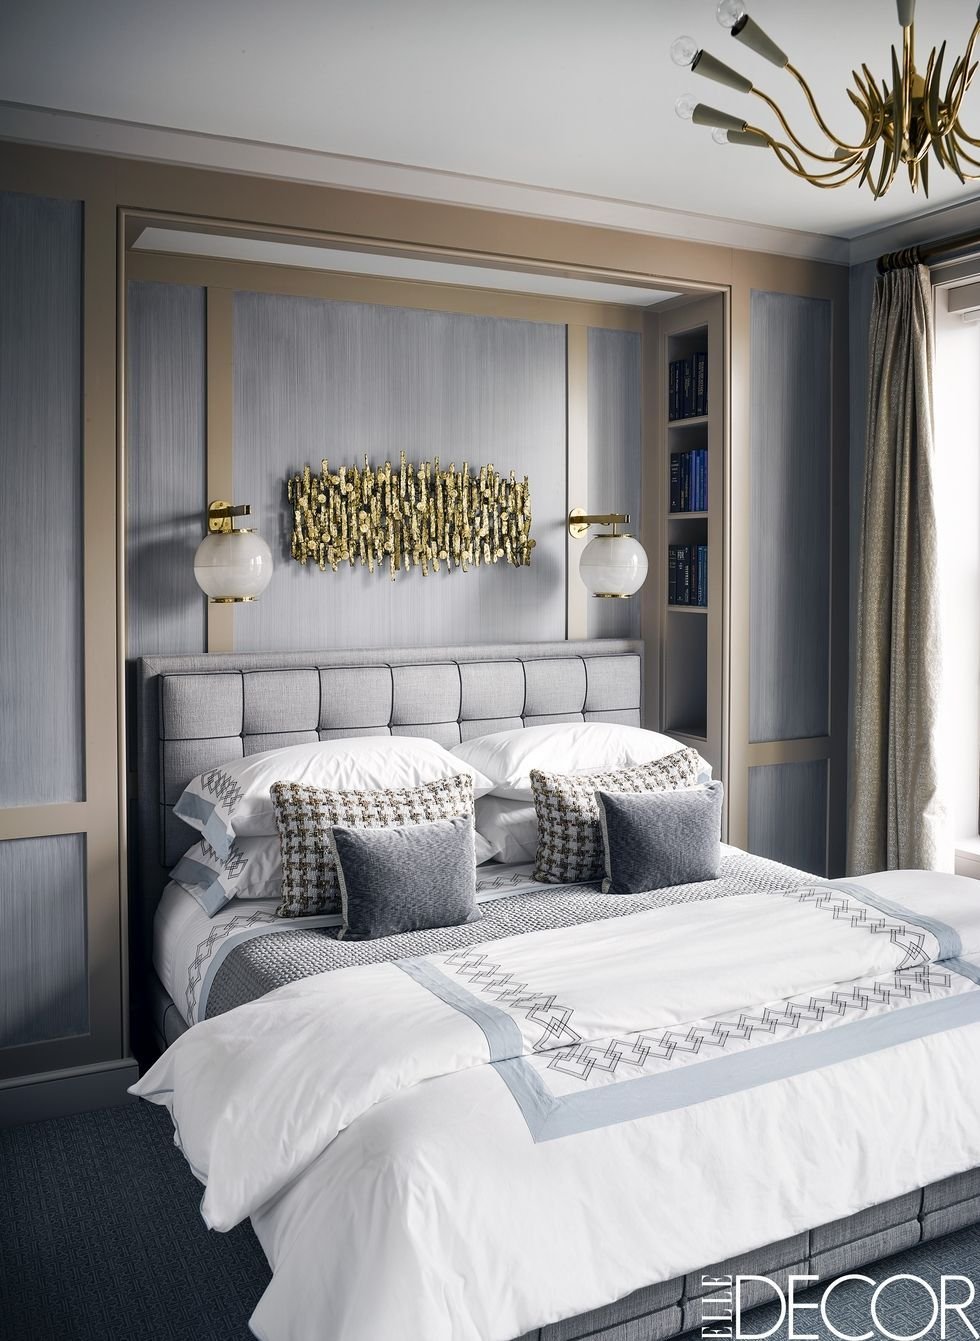 50 Small Bedroom Design Ideas - Decorating Tips for Small ... on Bedroom Ideas For Small Rooms  id=68883